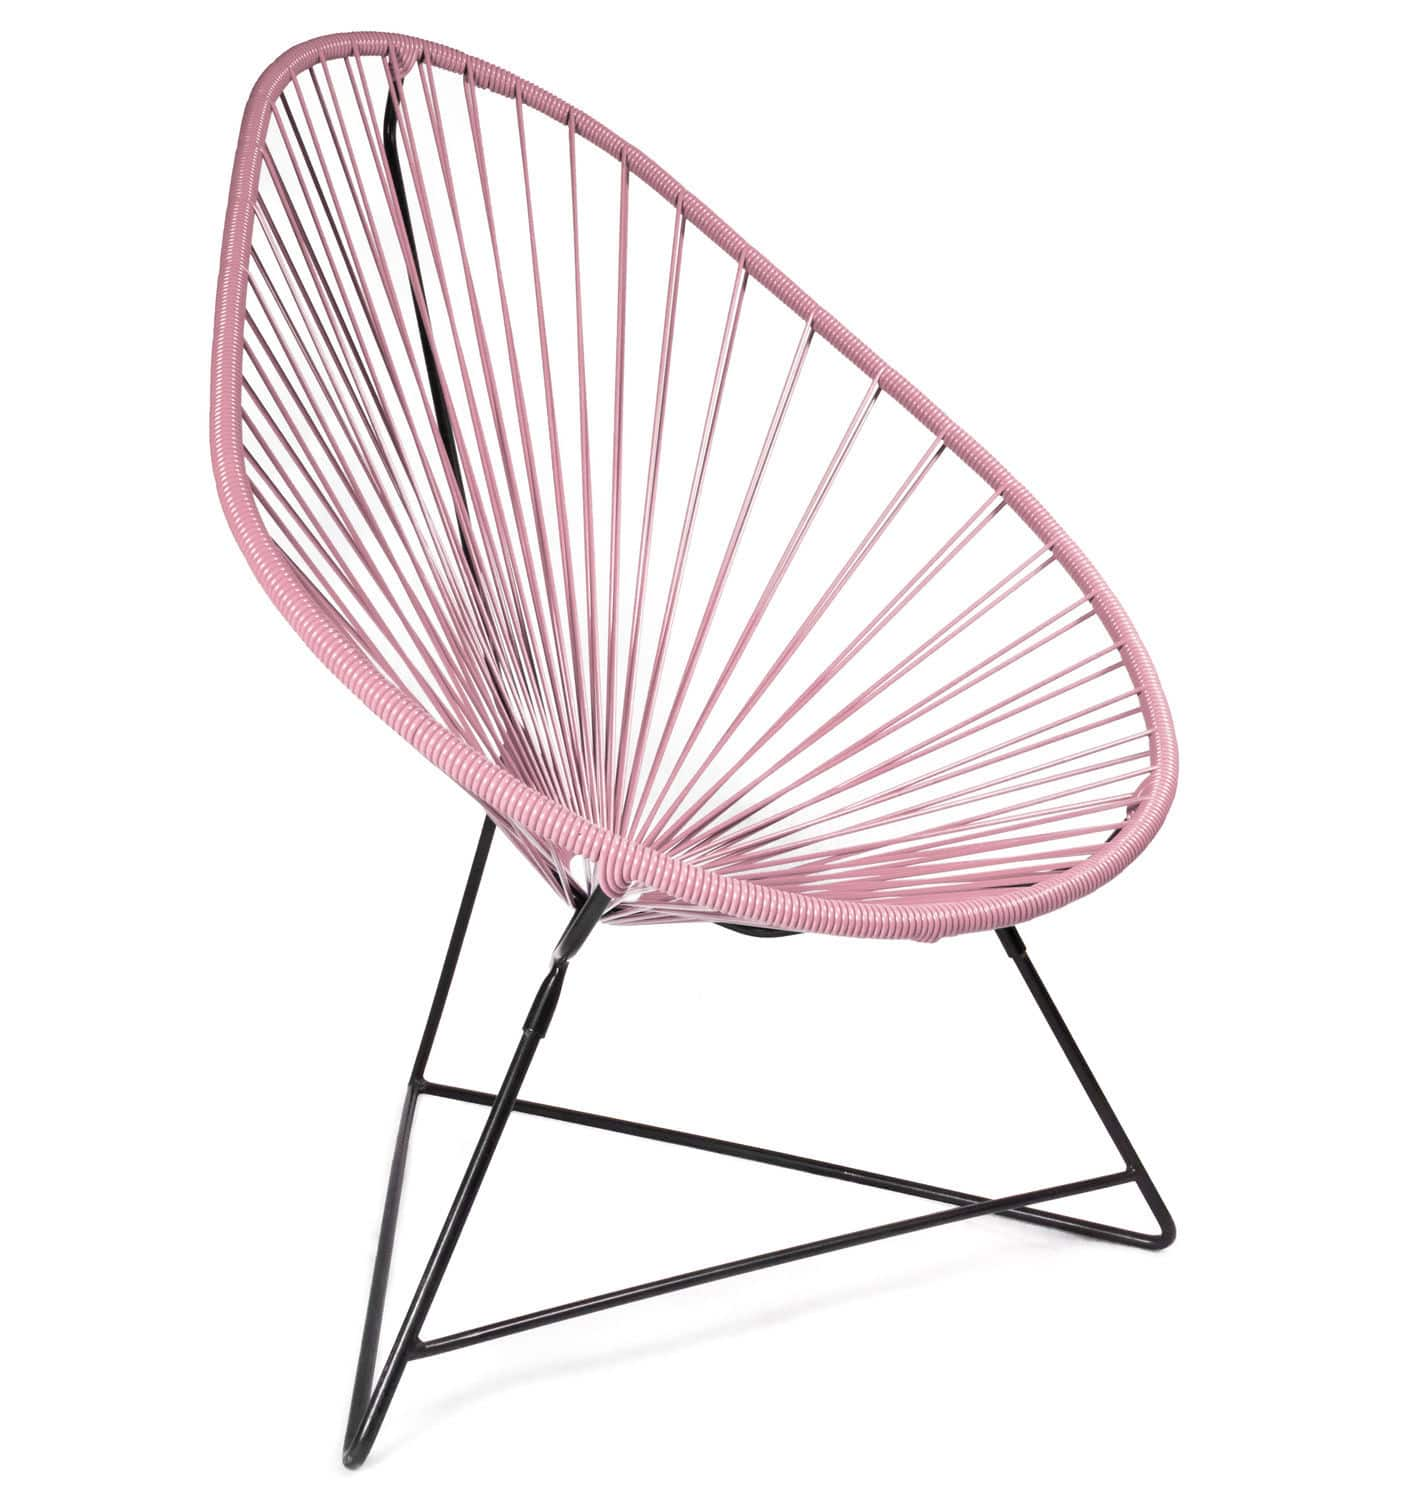 Acapulco chair vintage -  Vintage Armchair Plastic Lacquered Steel With Headrest Acapulco Structure Noire Boqa